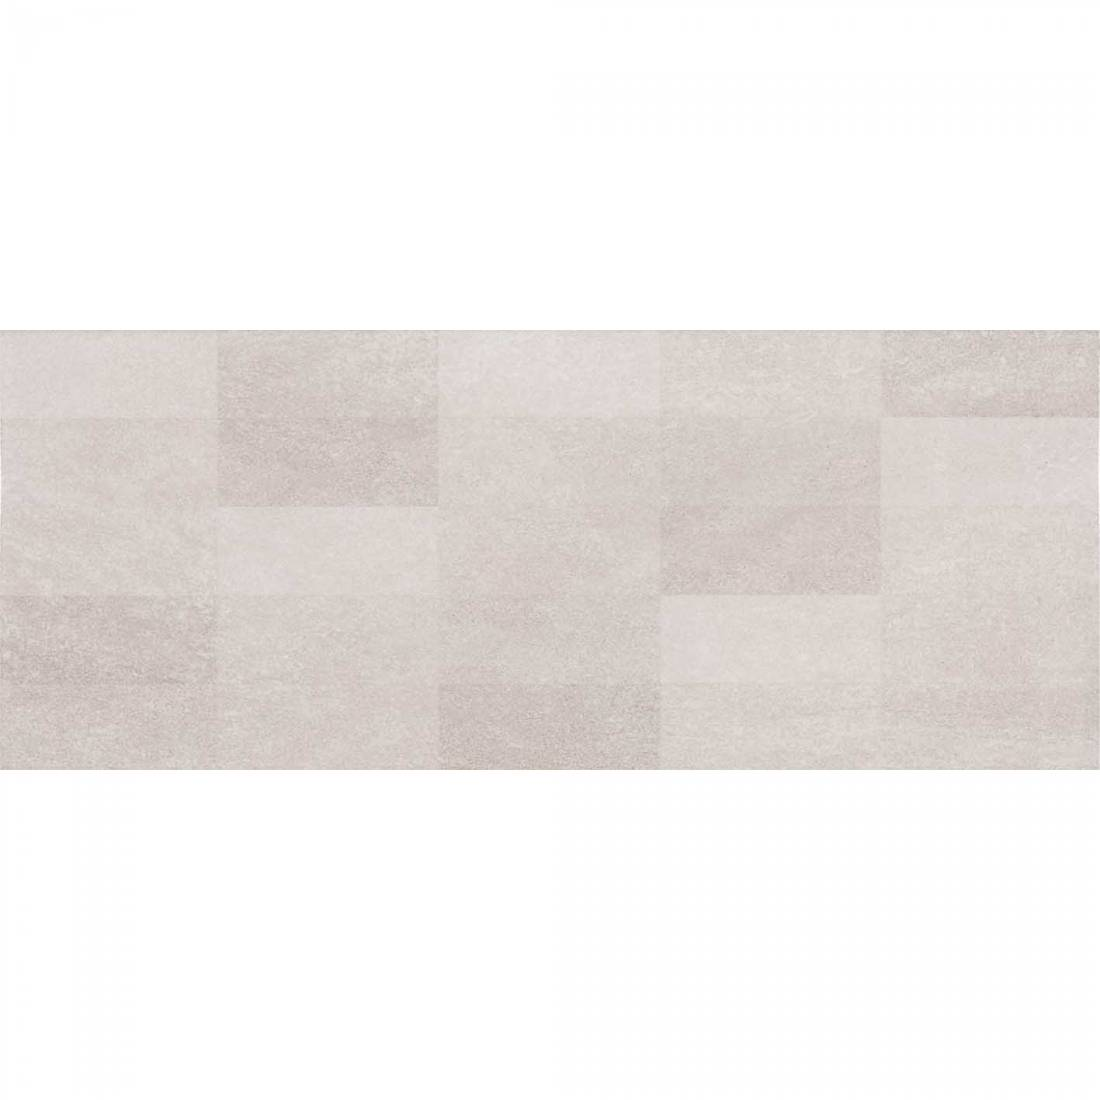 Mohave New Brick 20x50 Pearl Gloss 1